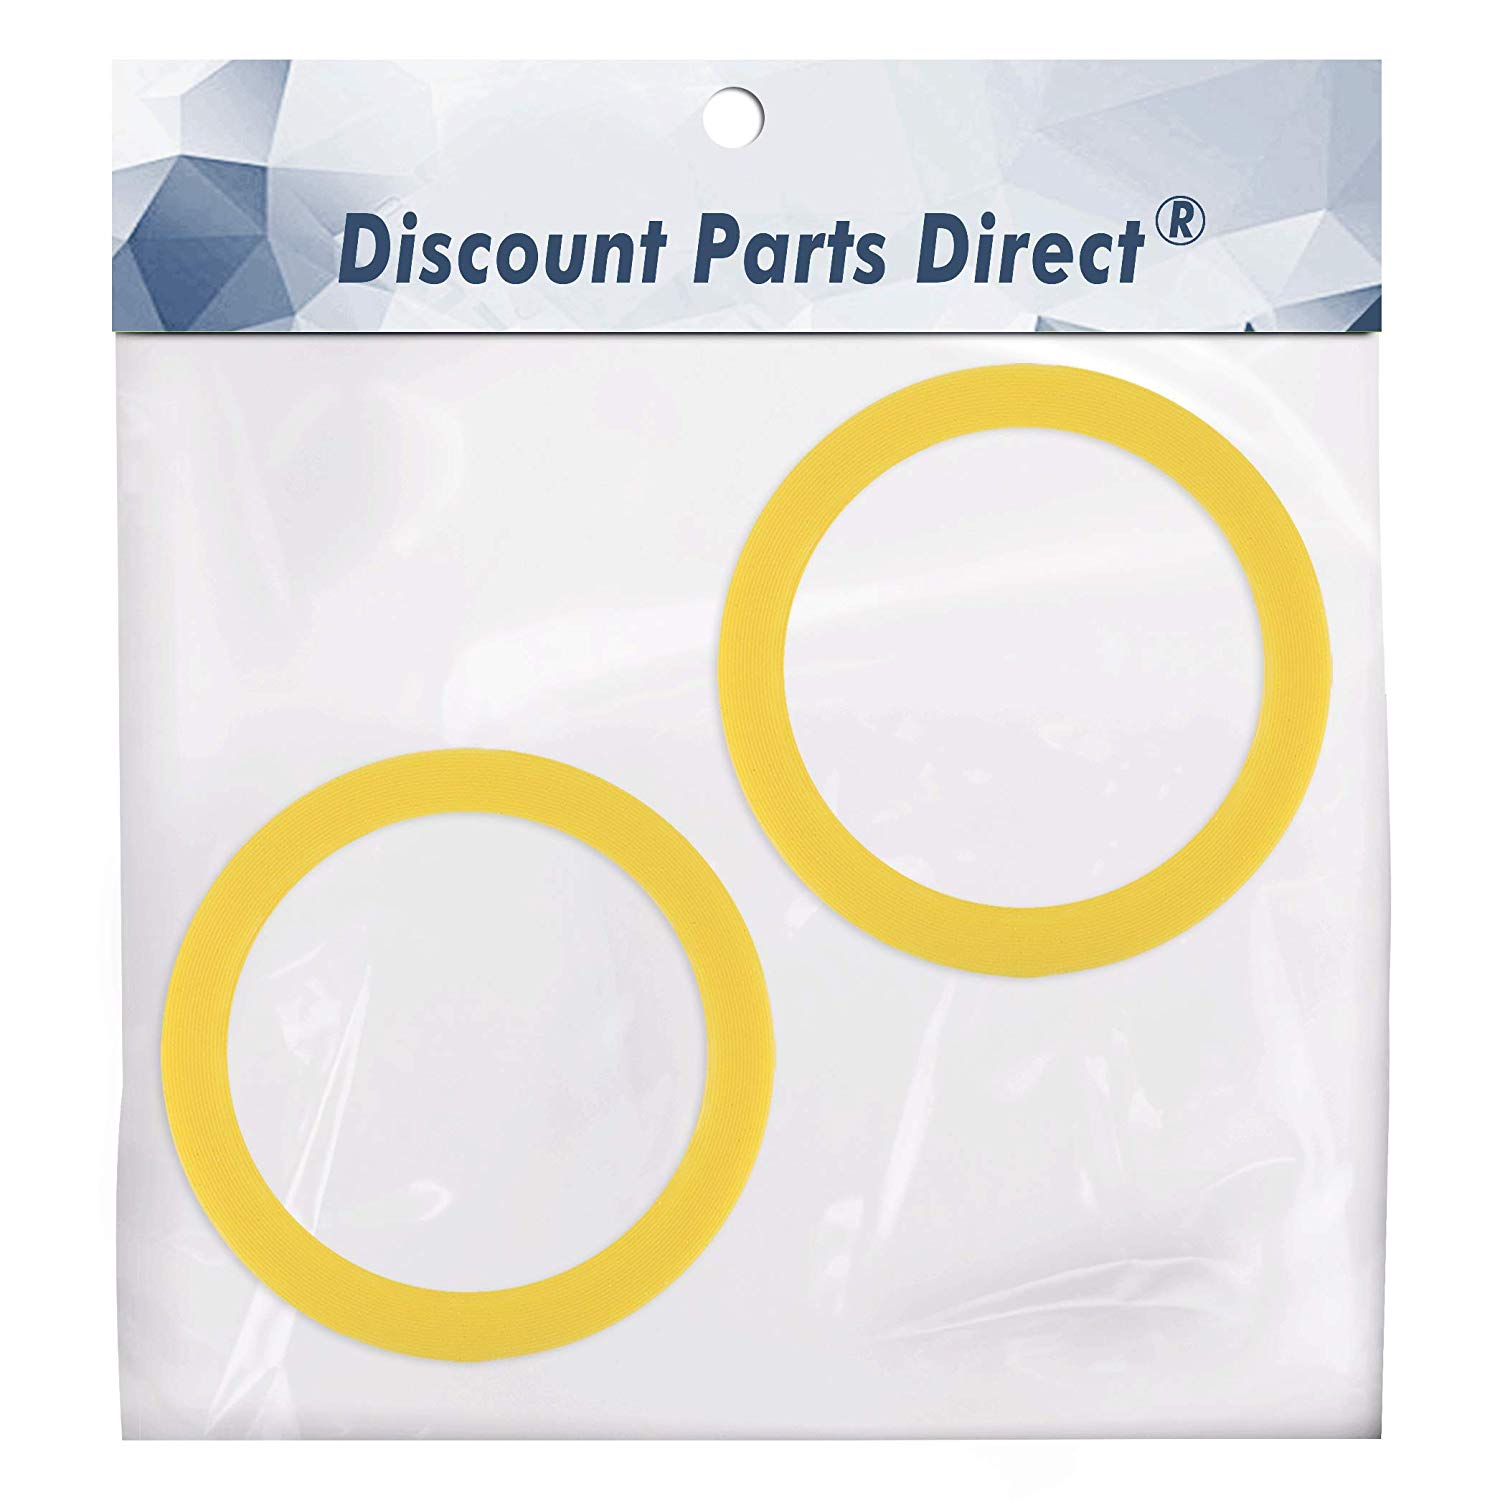 GP1059291 Tank Canister Gasket Kit 2475620 Replaces K-GP1059291 2 Pack Canister Flush Valve Seal Replacements For Kohler Toilets